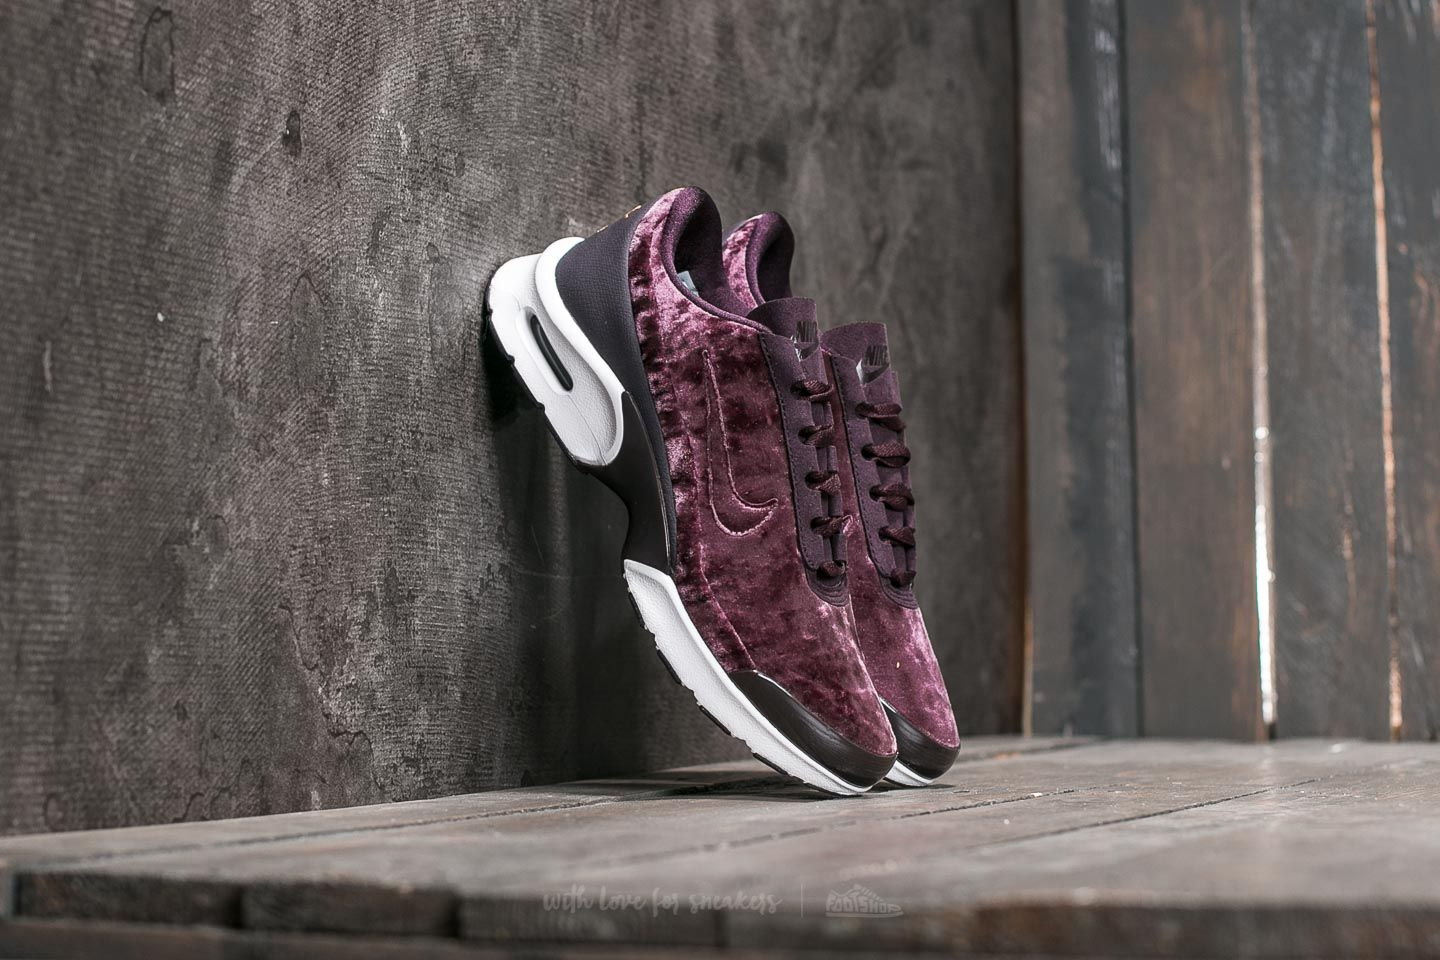 Nike W Air Max Jewell Premium Port Wine/ Port Wine